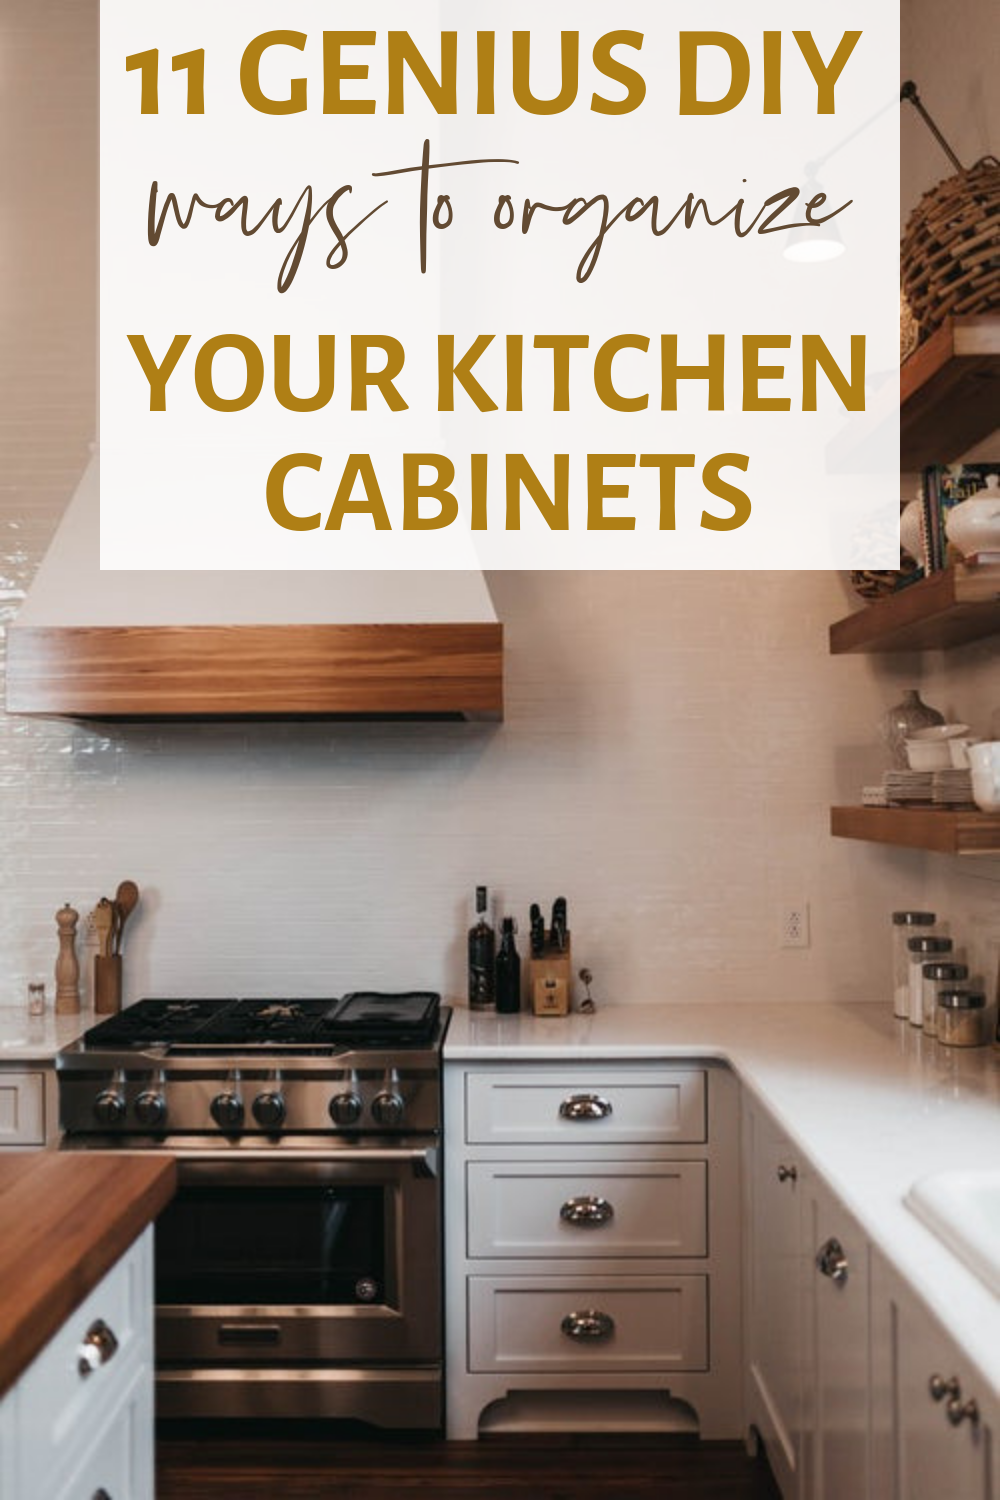 Miraculous 11 Genius Diy Ways To Organize Your Kitchen Cabinets Download Free Architecture Designs Intelgarnamadebymaigaardcom